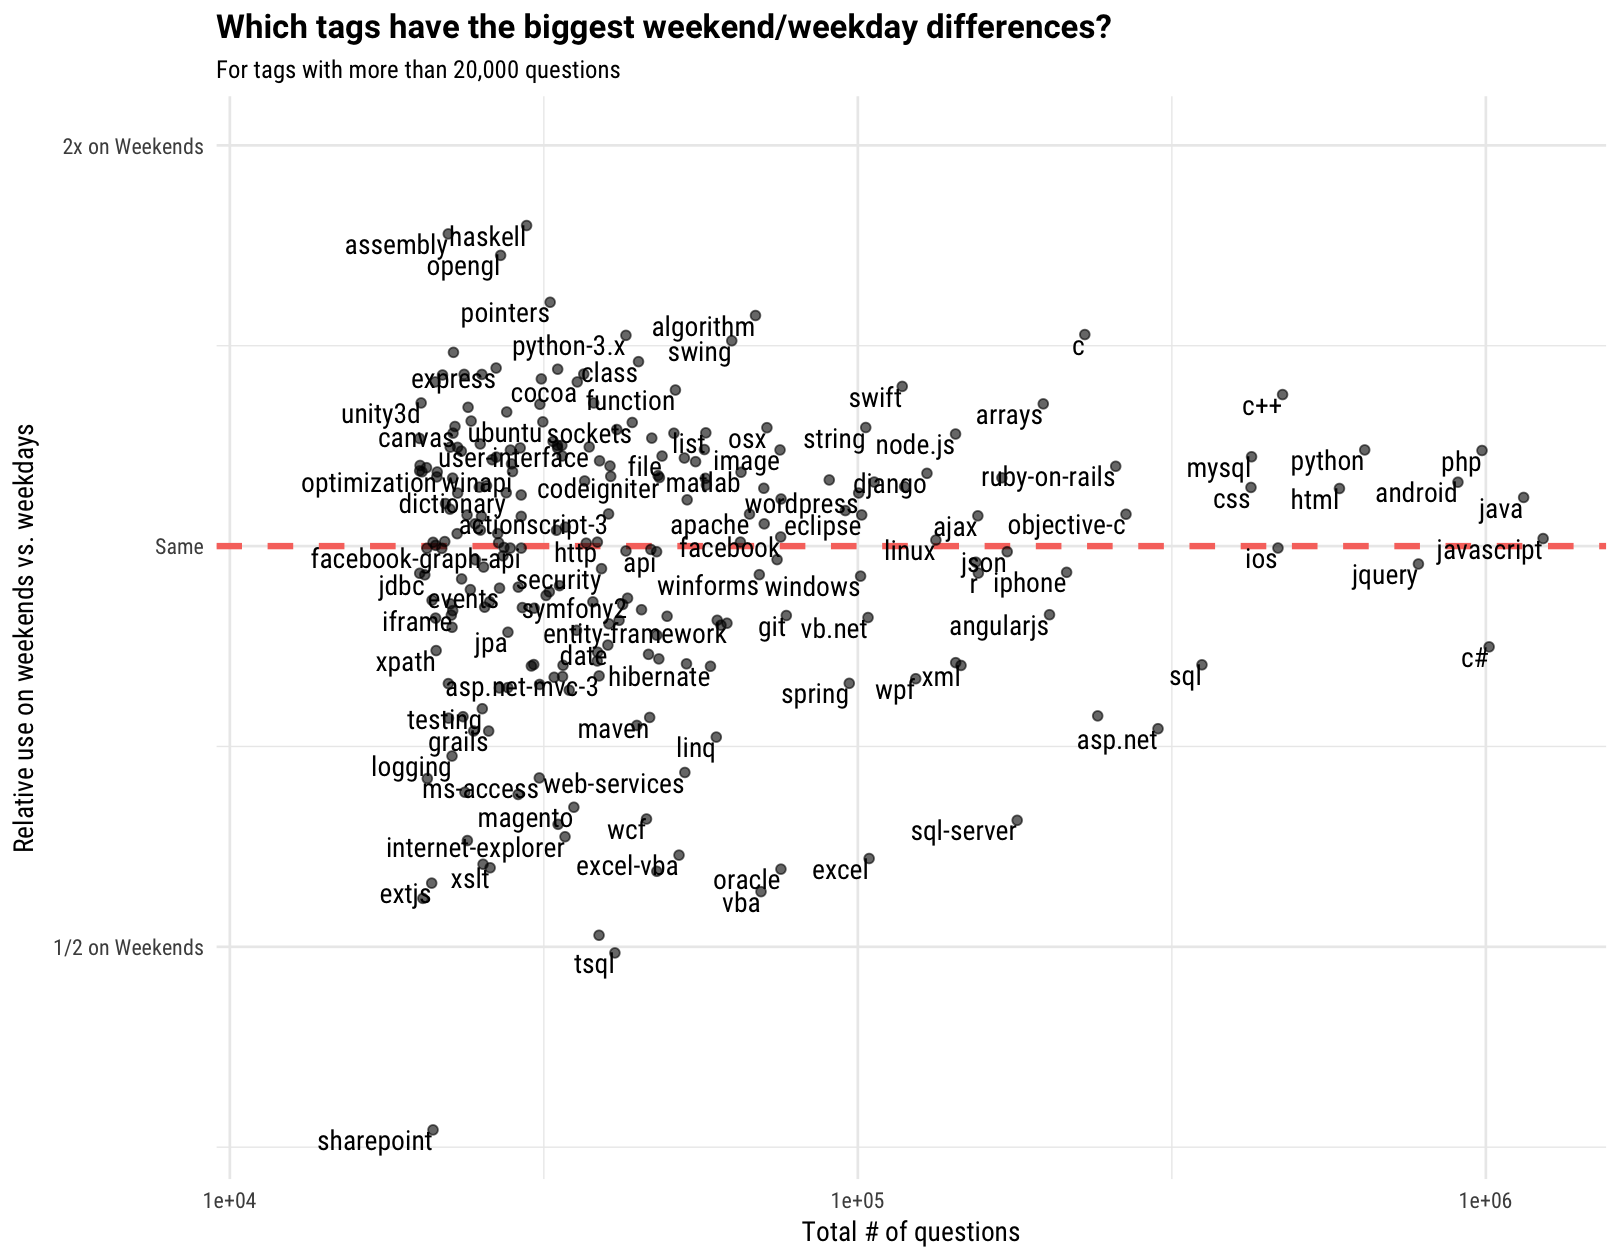 WHAT PROGRAMMING LANGUAGES ARE USED MOST ON WEEKENDS? - Open